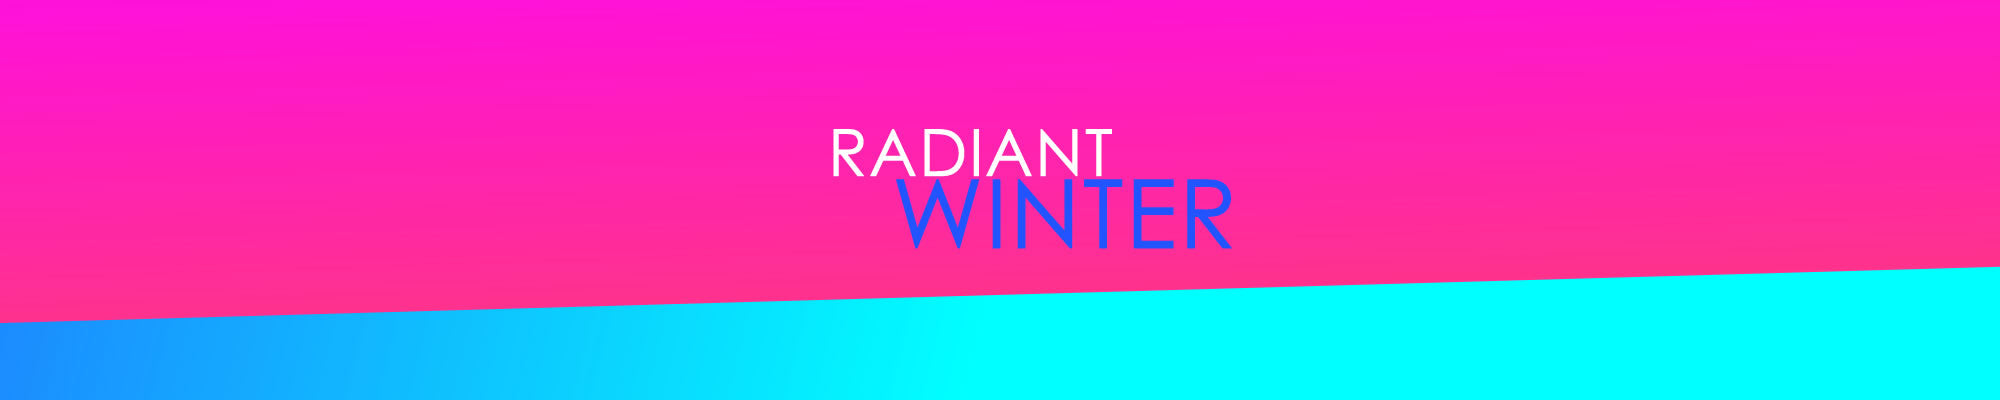 RADIANT WINTER COLLECTION